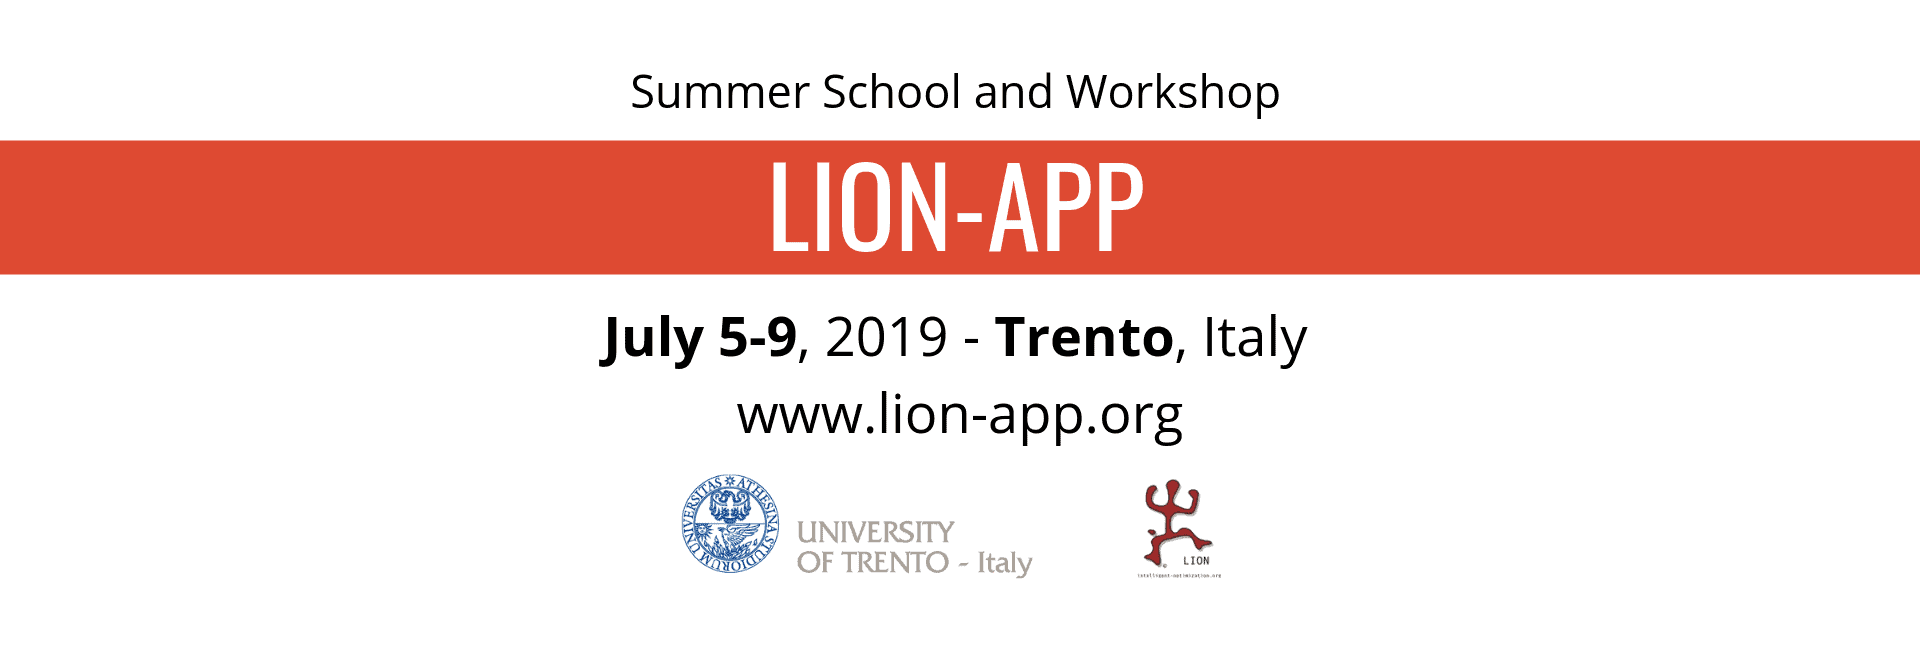 LION-APP Summer School